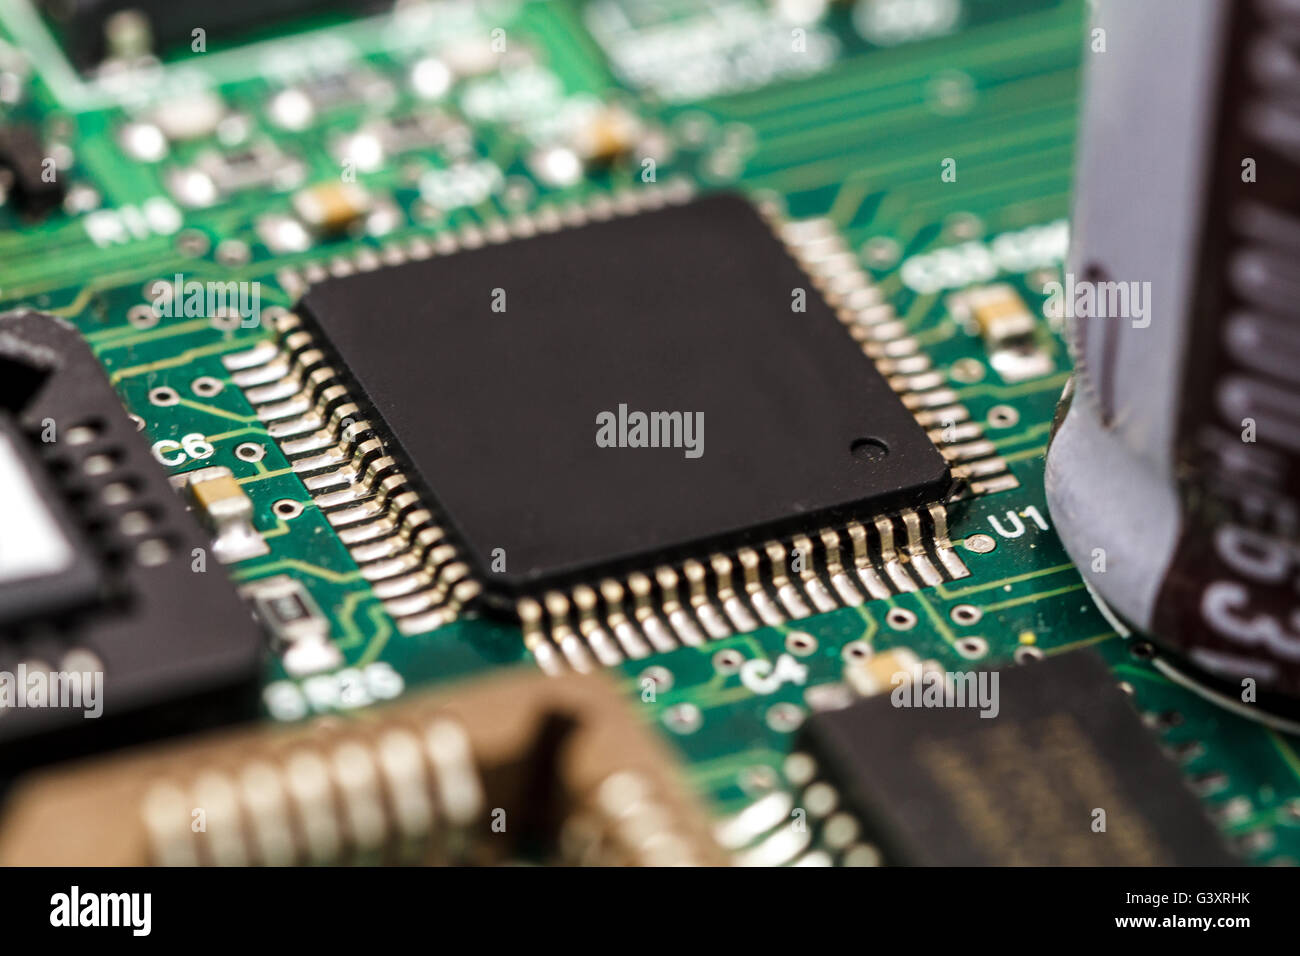 Printed circuit board with ICs, chip capacitors, and chip resistors. - Stock Image